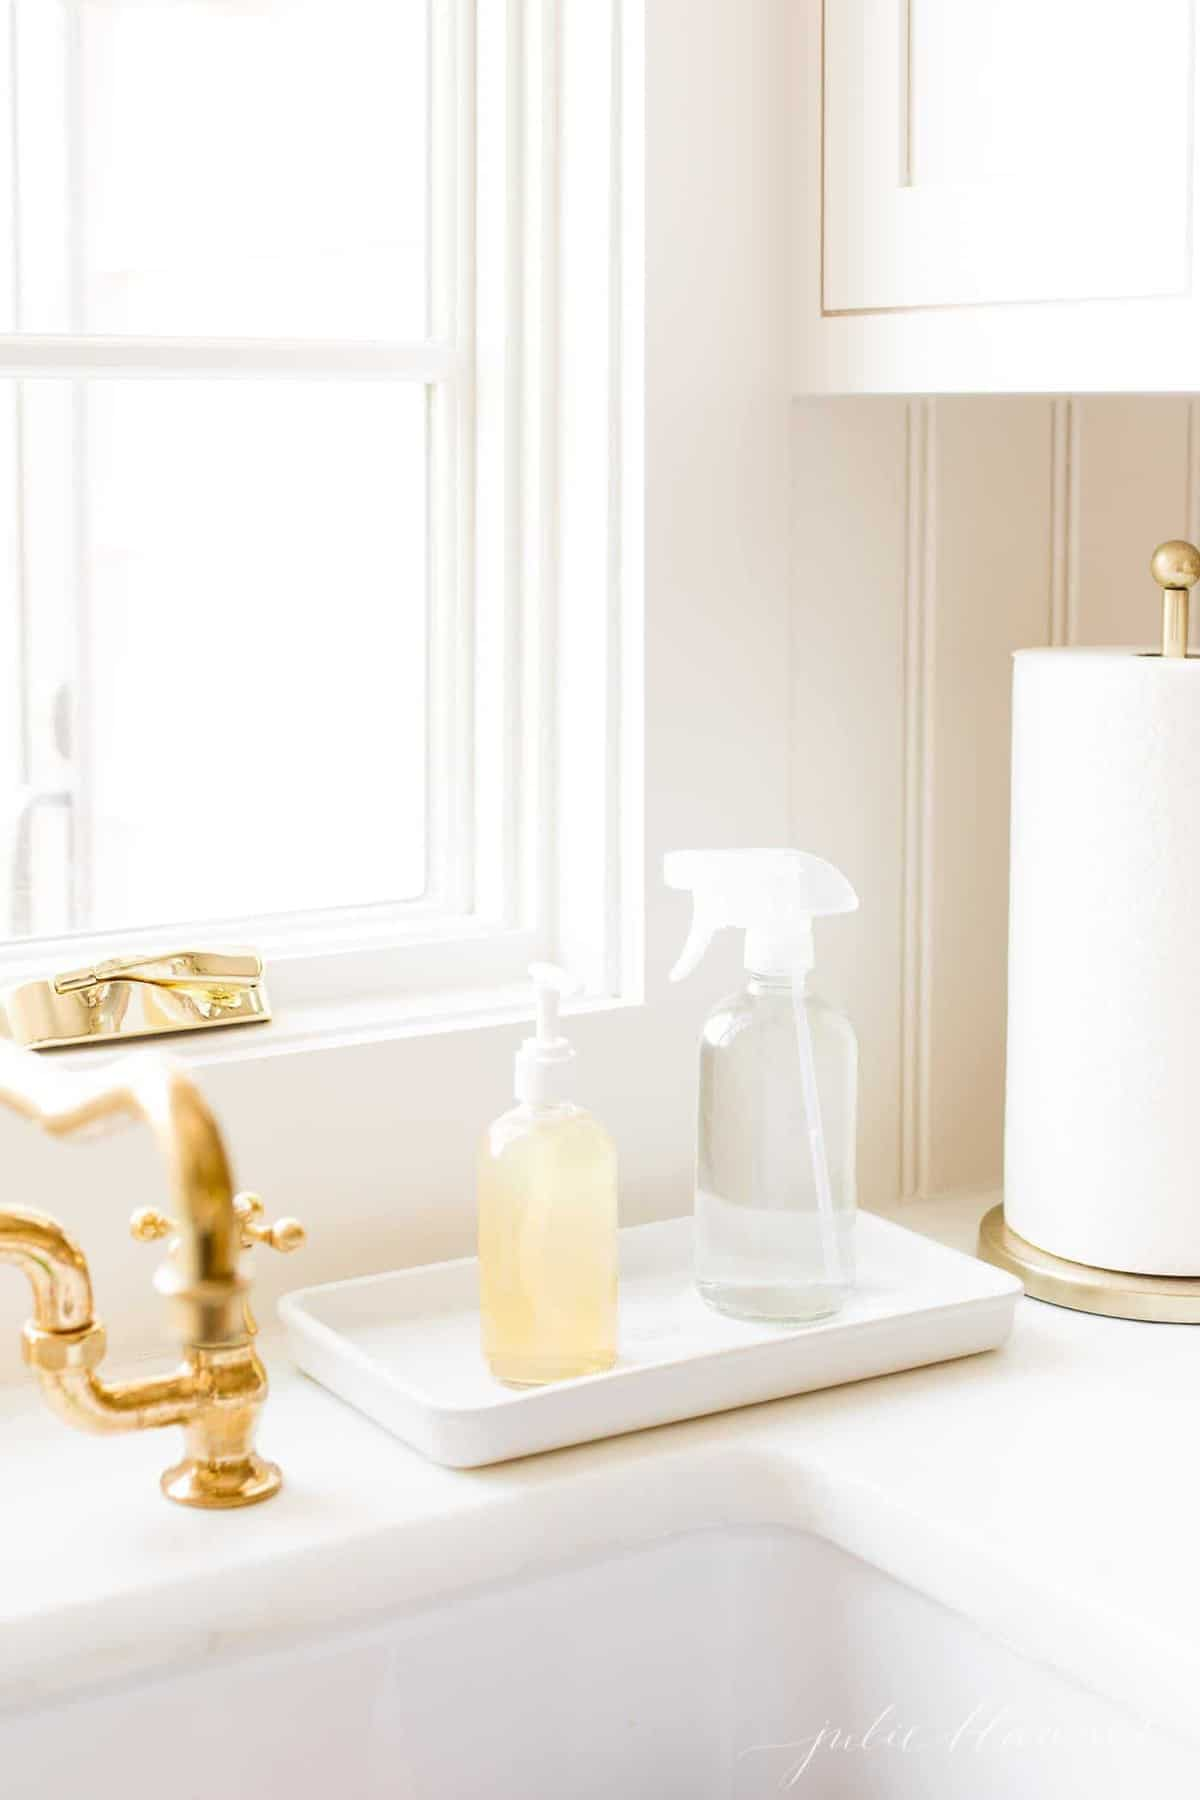 Simple kitchen storage of spray and soap near the sink.